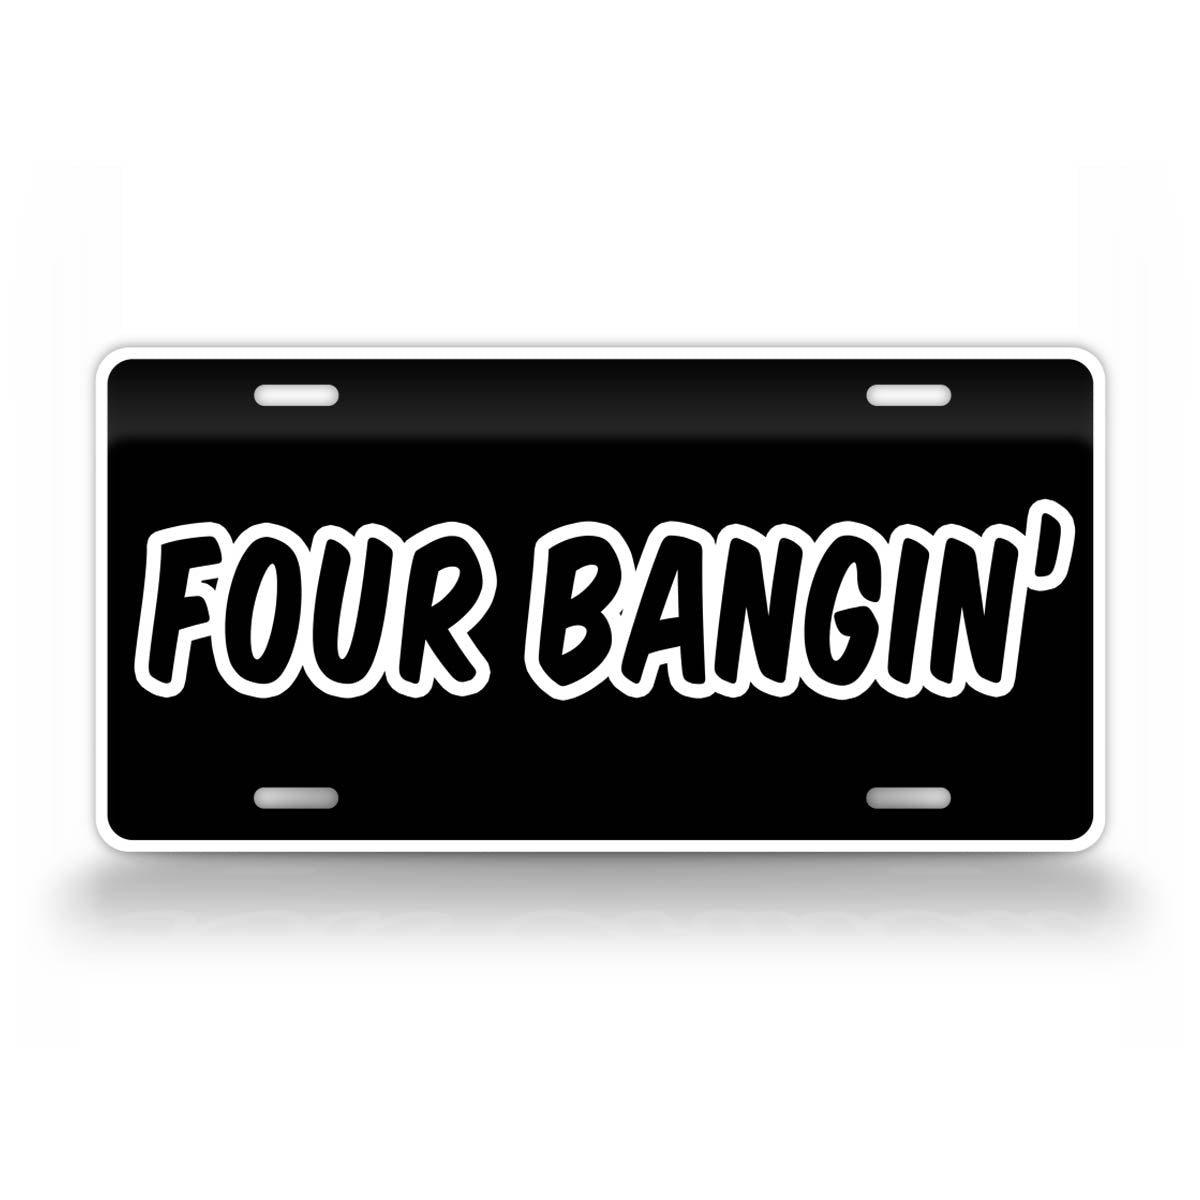 Four Bangin' Four Cylinder Engine Vehicle License Plate